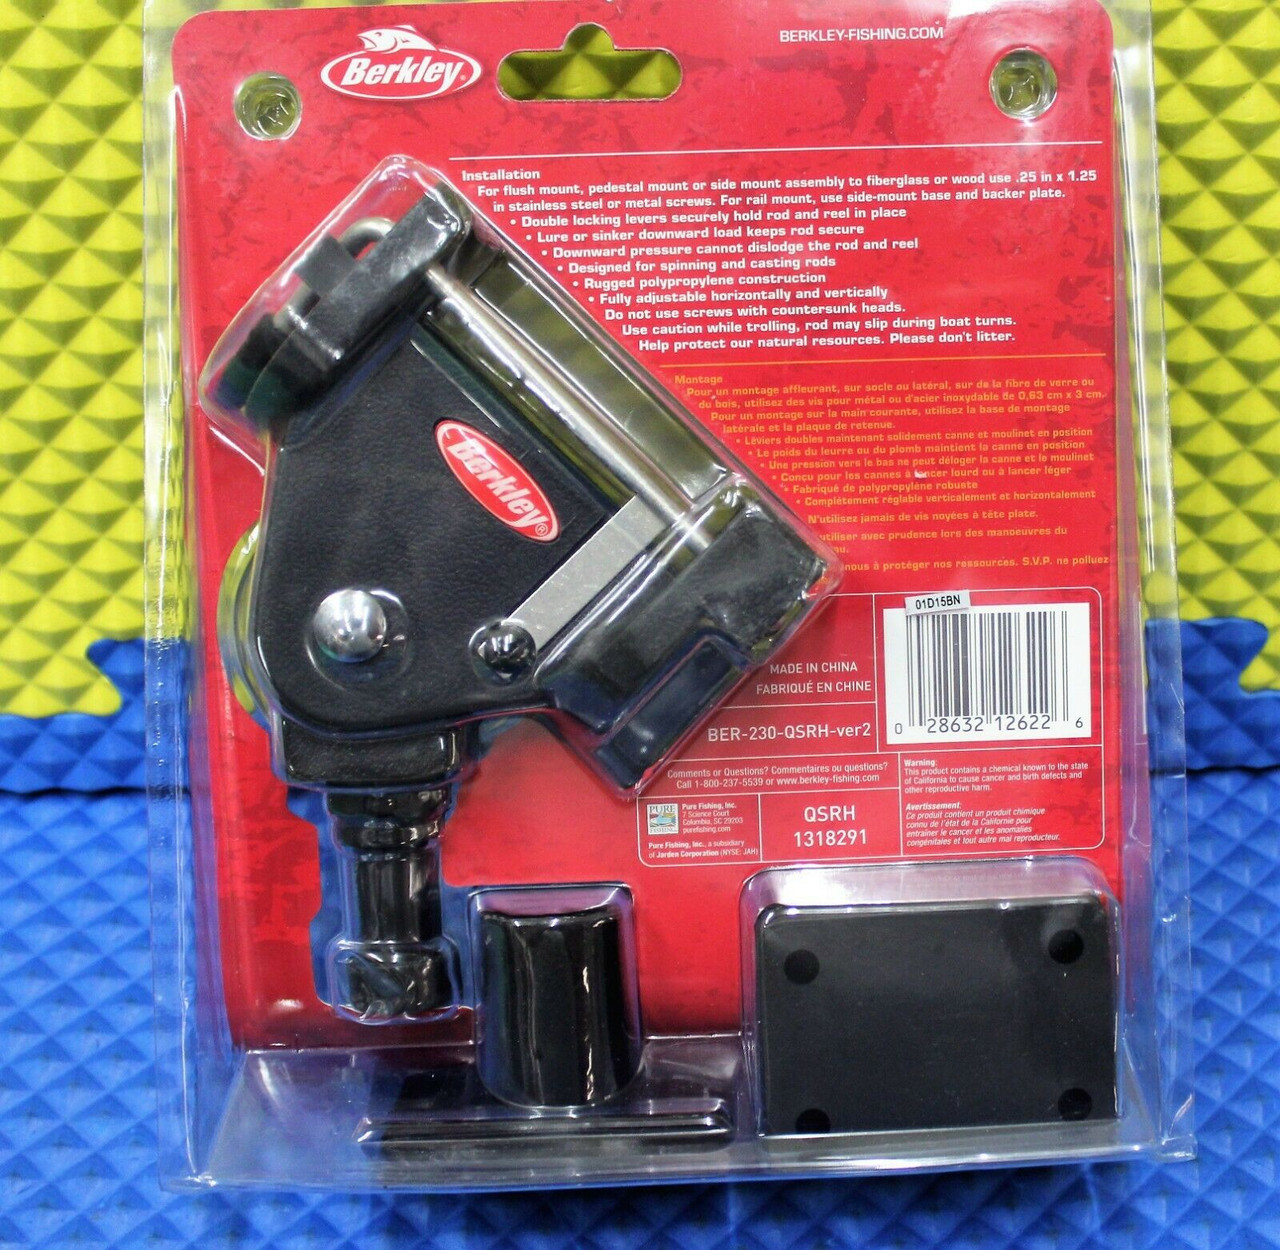 Berkley Fishin' Gear Quick Set Rod Holder QSRH 1318291